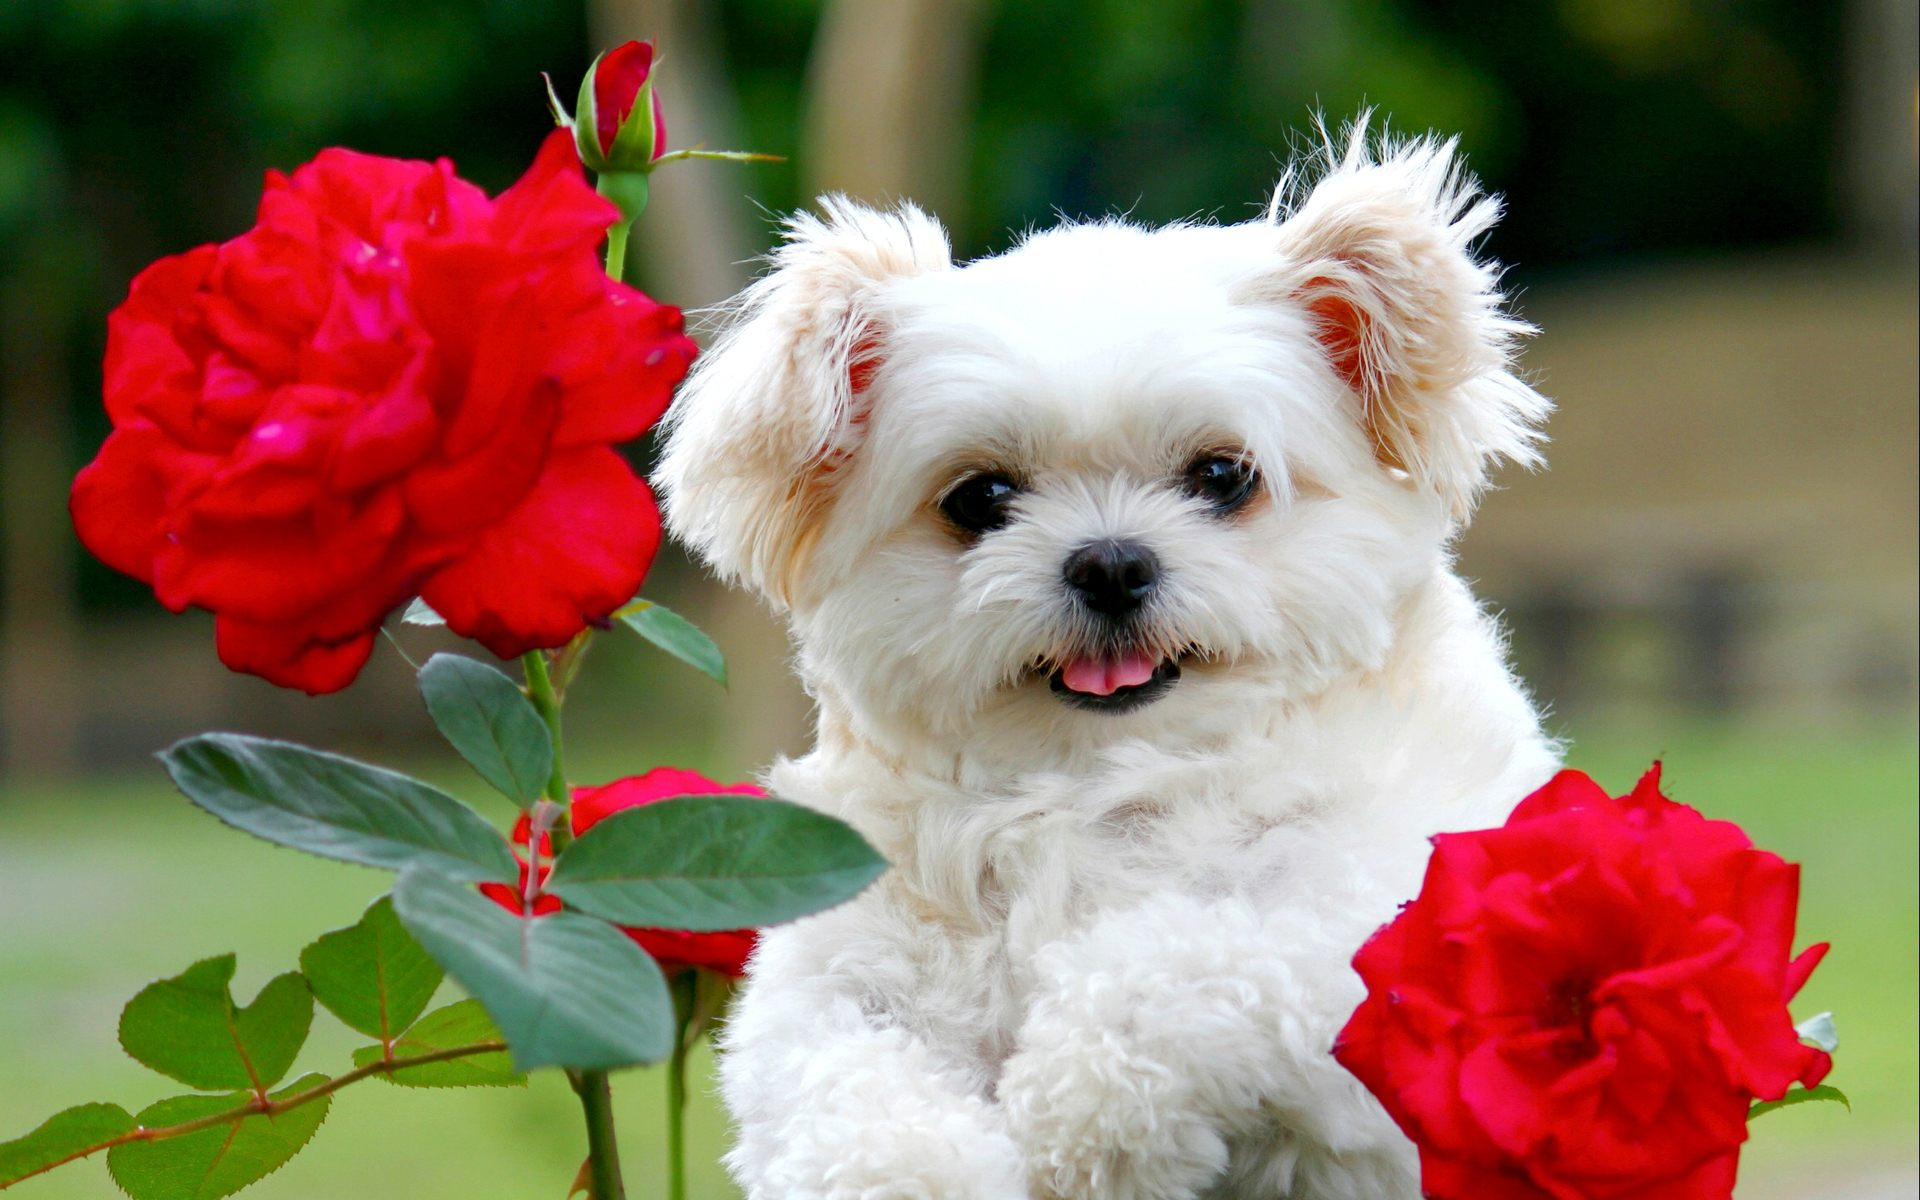 78+ ideas about Cute Puppy Wallpaper on Pinterest | Cute puppies